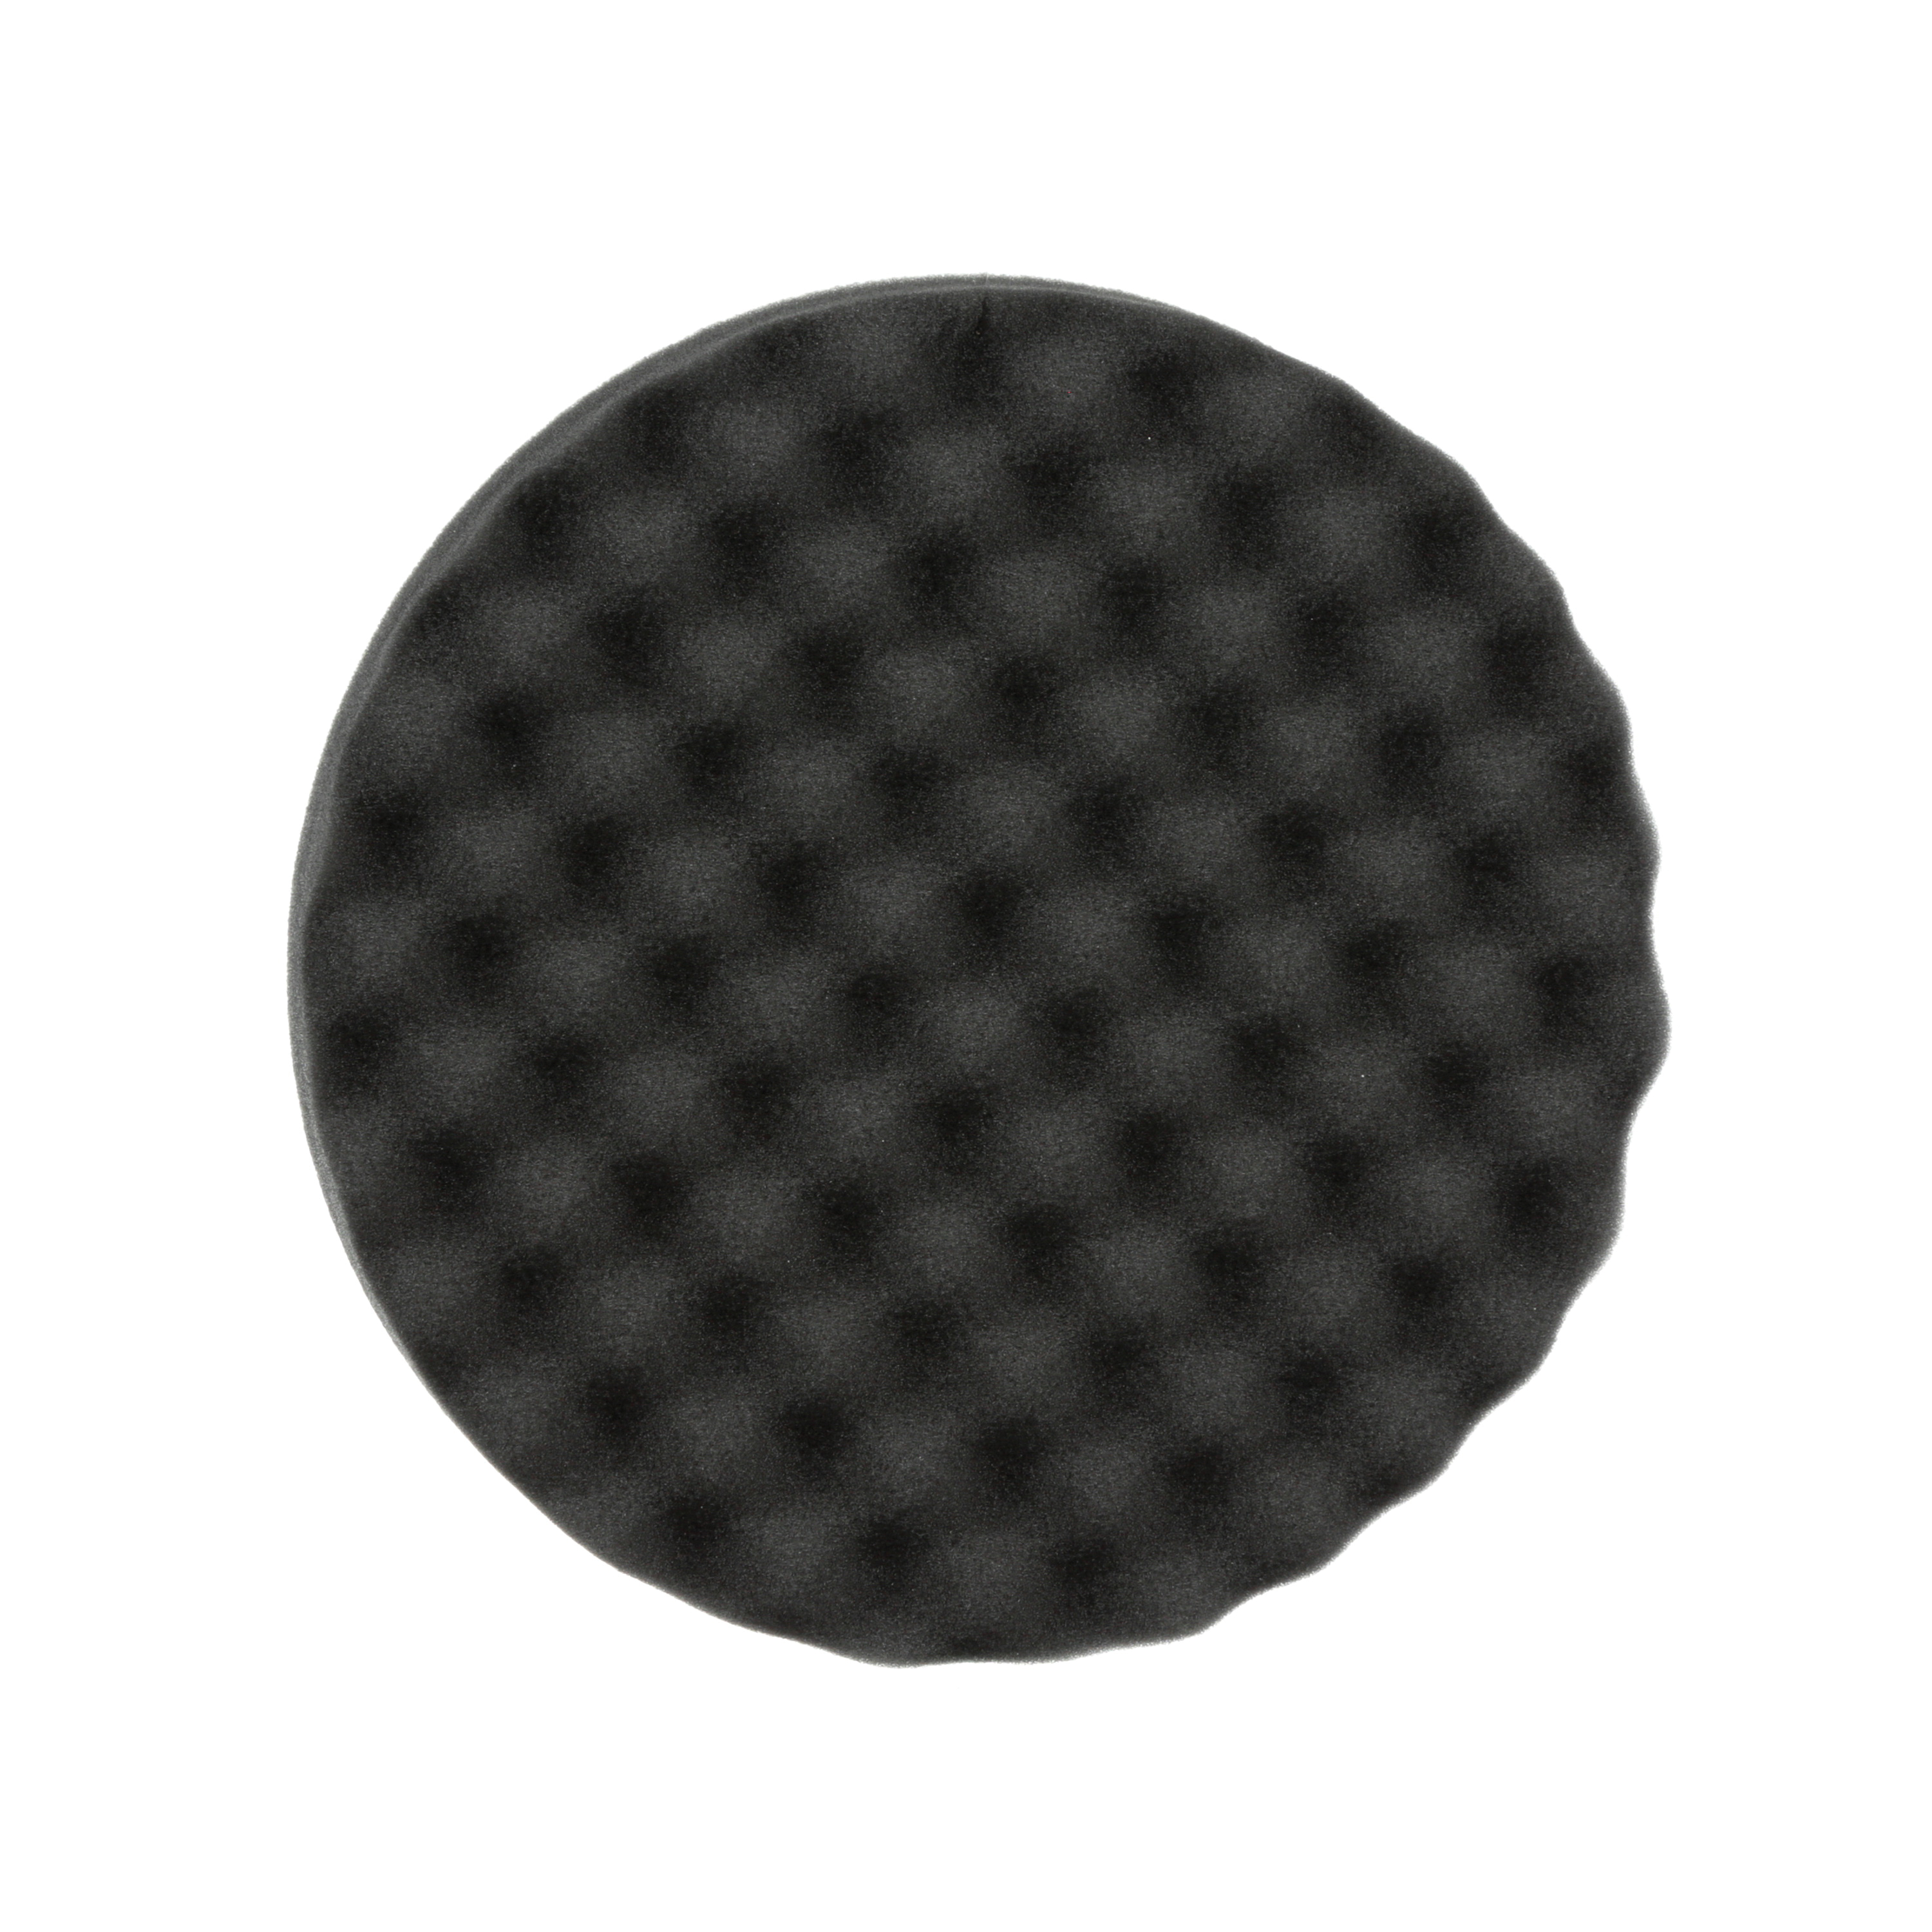 3M™ PerfectIt™ 051131-05725 Polishing Pad, 8 in Dia, Hook and Loop Attachment, Foam Pad